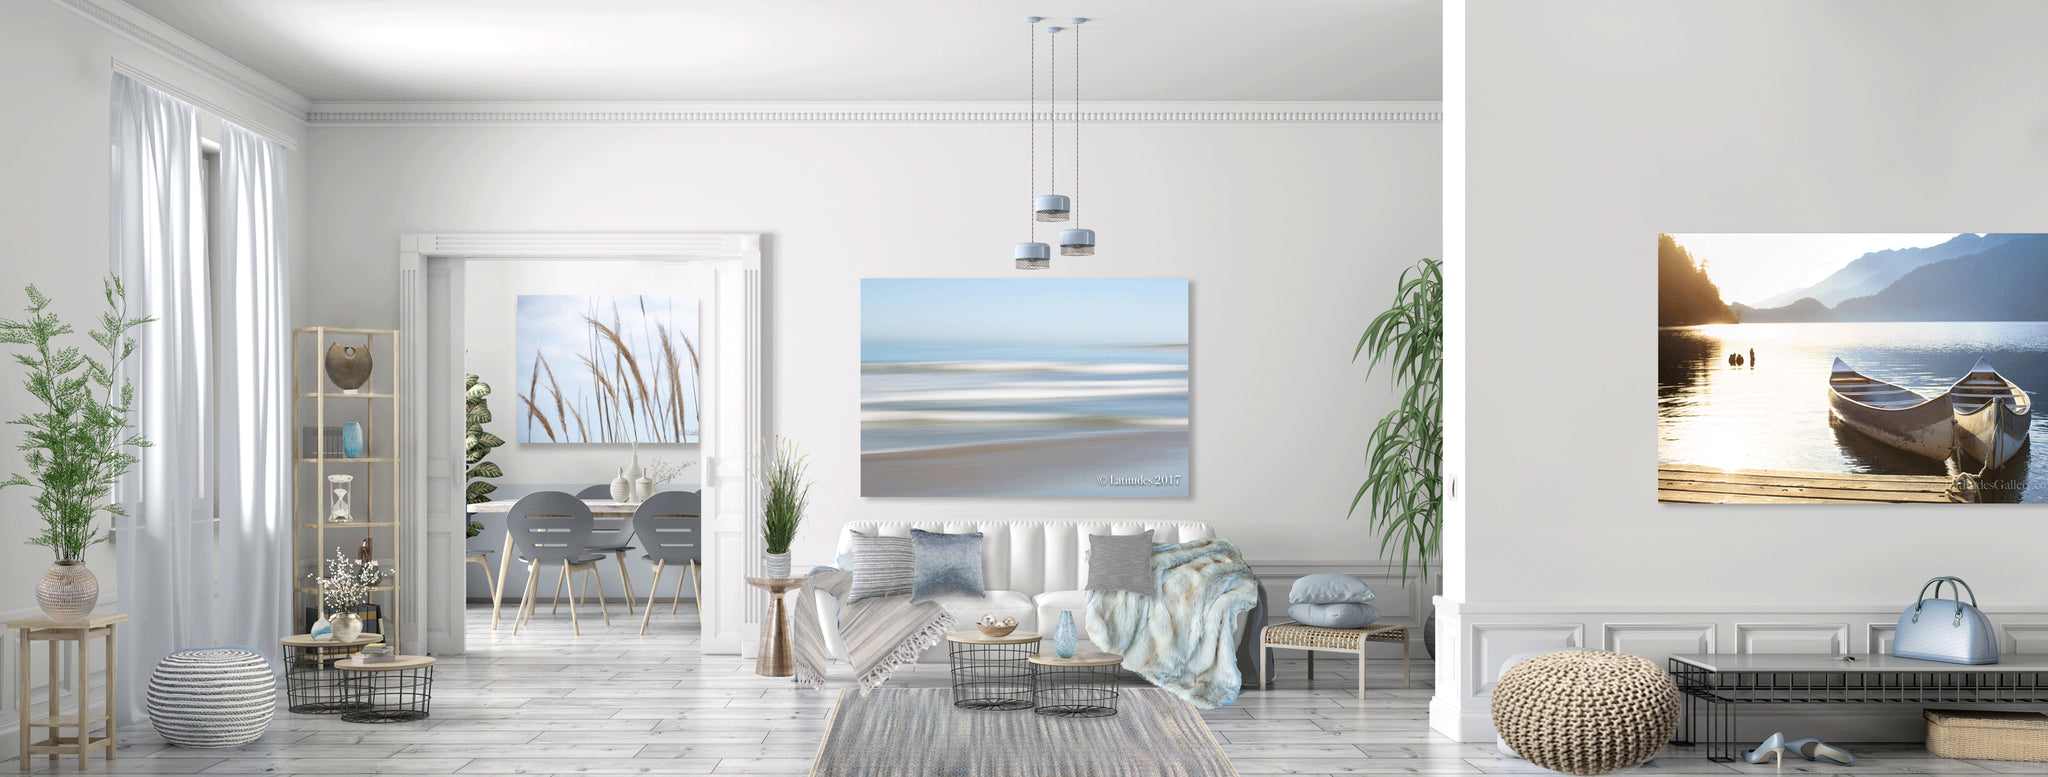 Expansive relaxation found in soft blues, grays, taupes, whites and pale browns. Transforming a bland space into an immersive experience with textures and colors. Streaks and line textures played throughout incorporating the line elements from the artwork into the space.